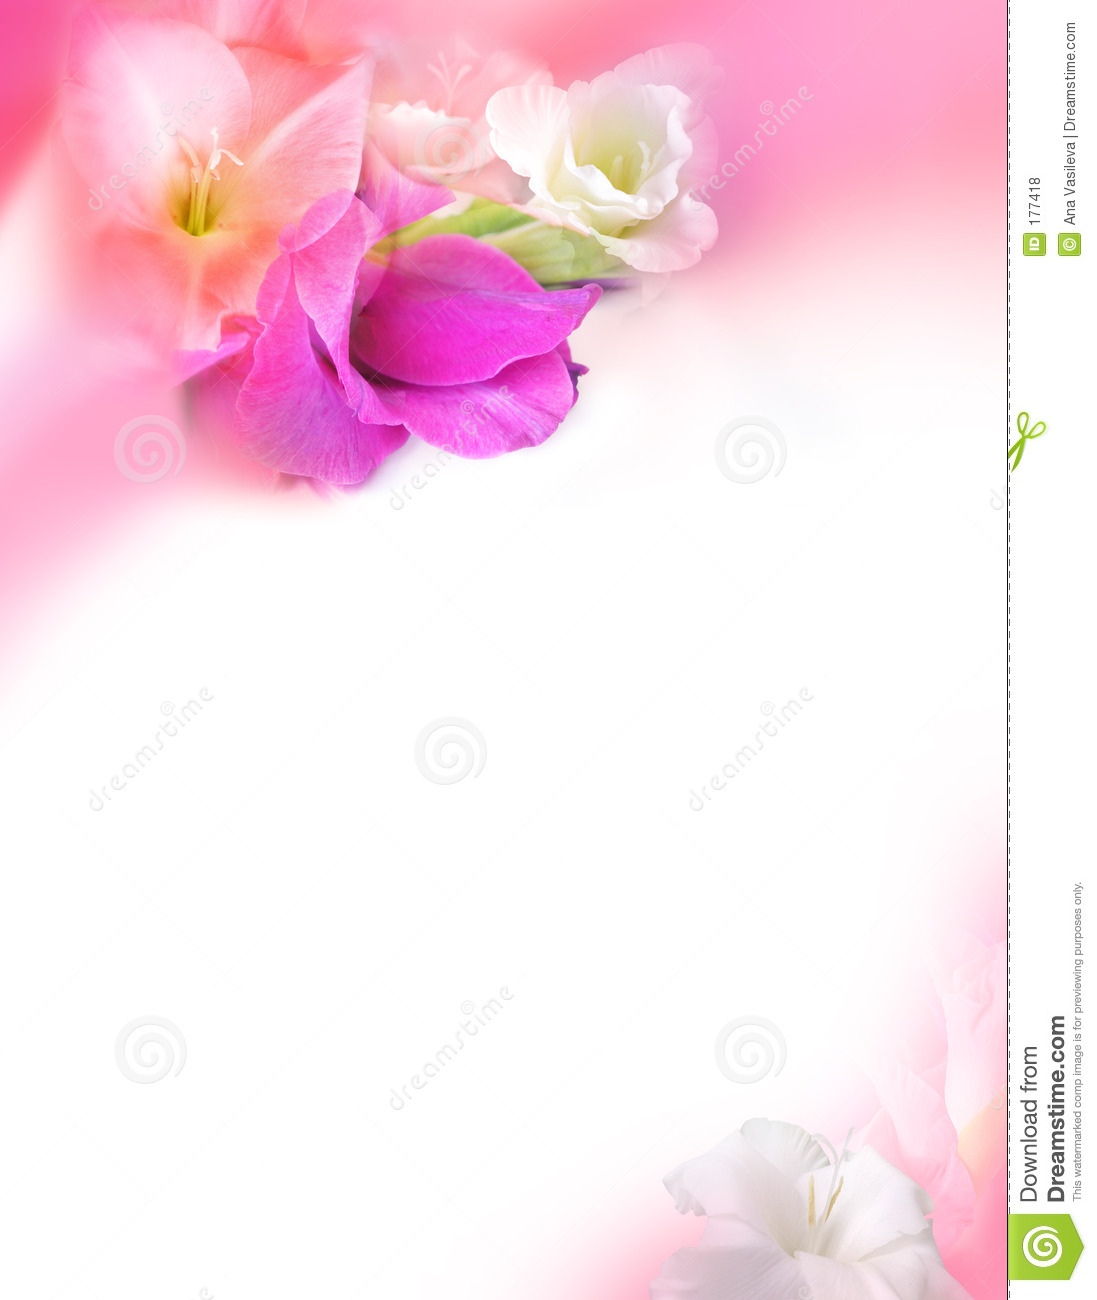 love greeting card st valentines day flowers stock illustration